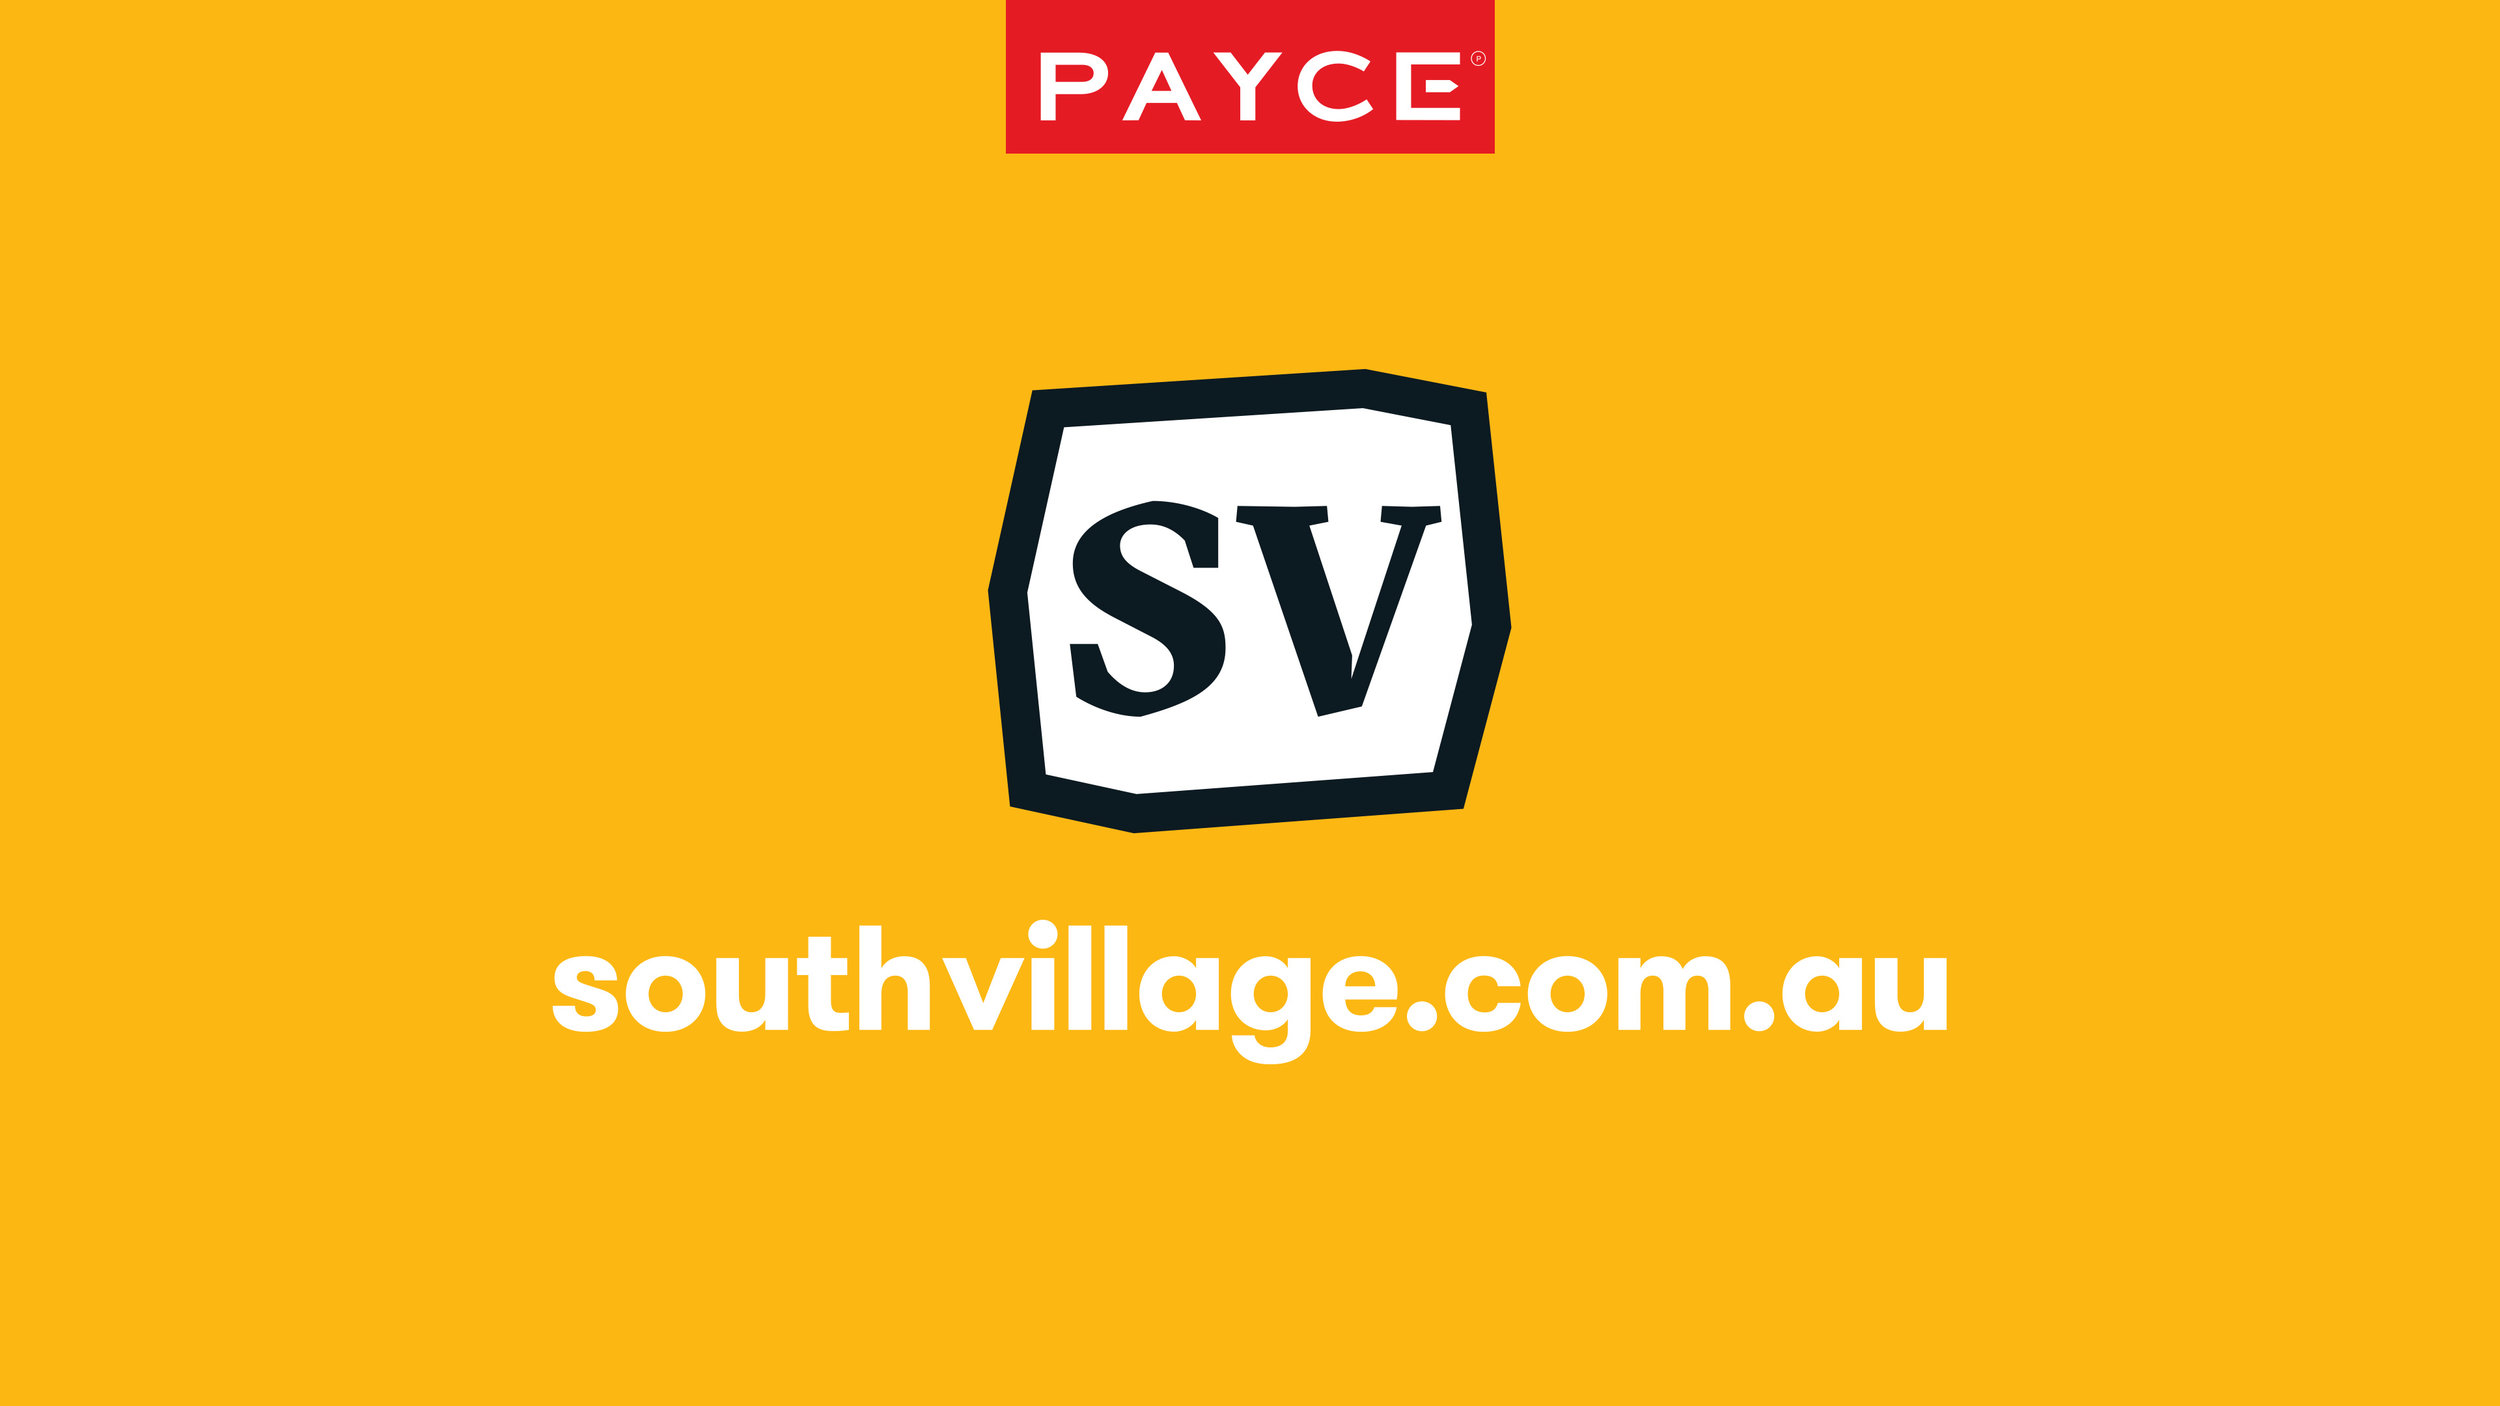 South Village - Mirvac & PAYCE   Launching a vibrant new offering to South Sydney.                             View Project